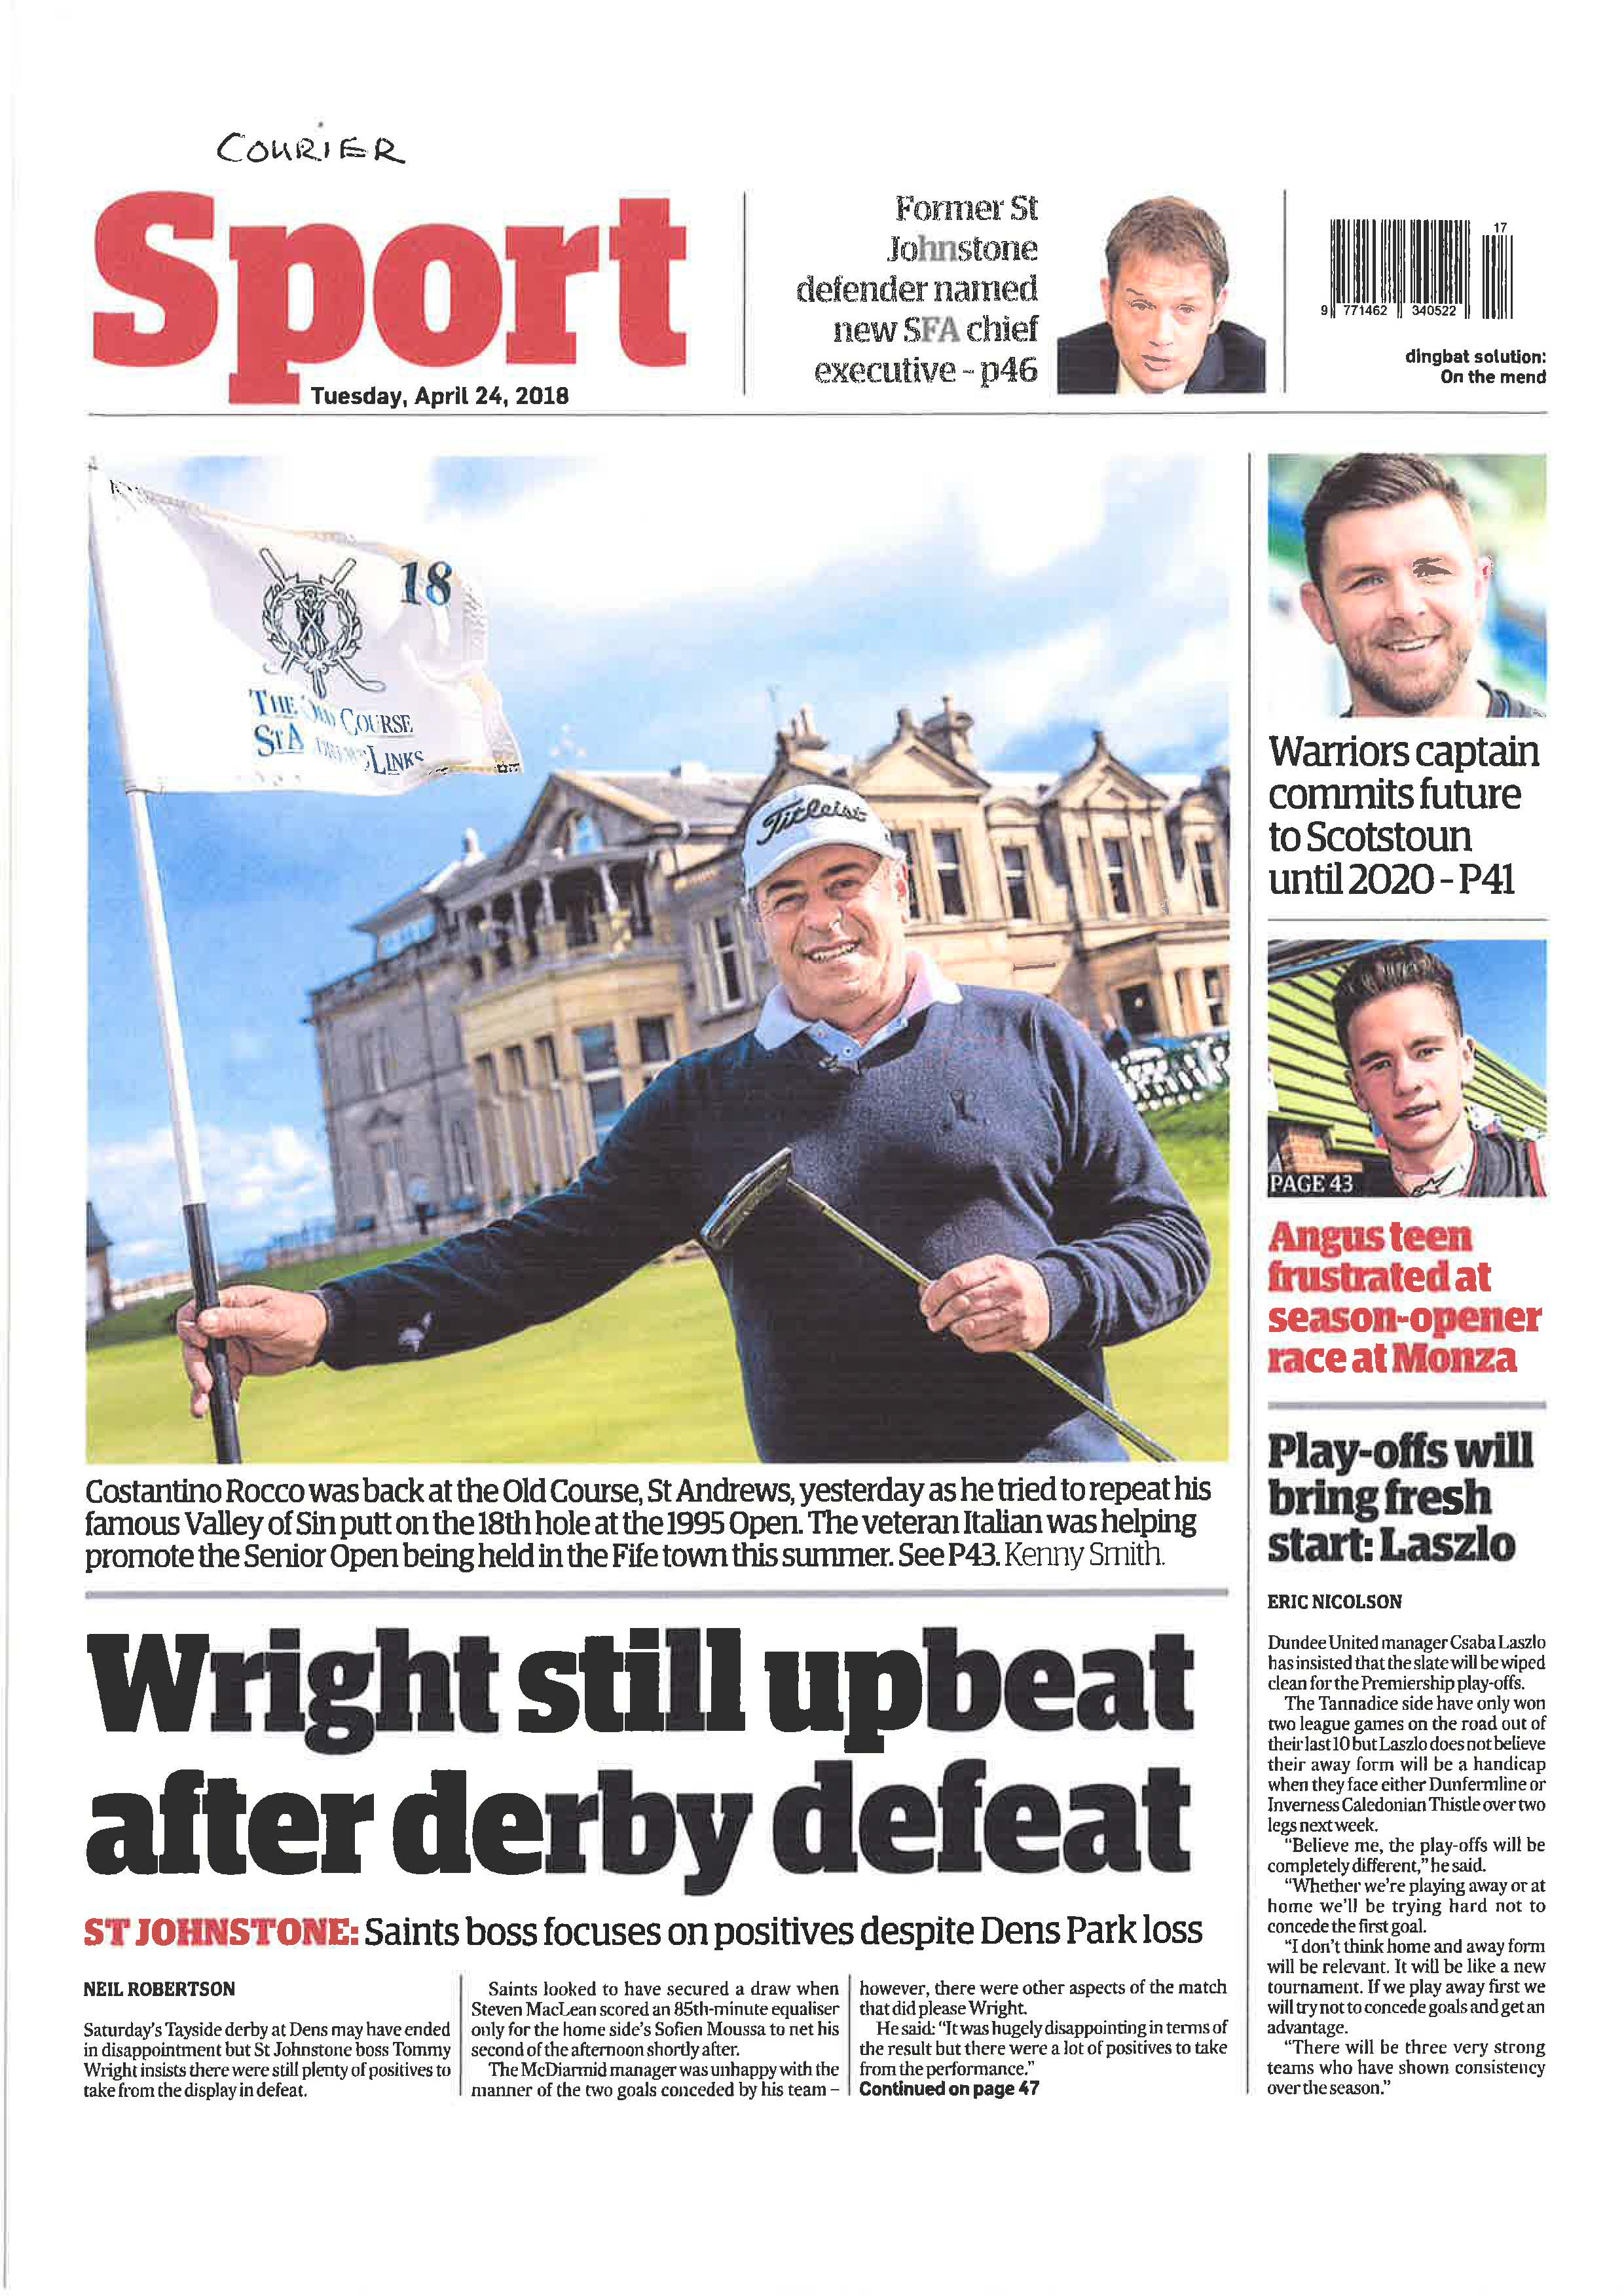 Daly And Rocca Ready To Renew Great Rivalry Over The Old Course